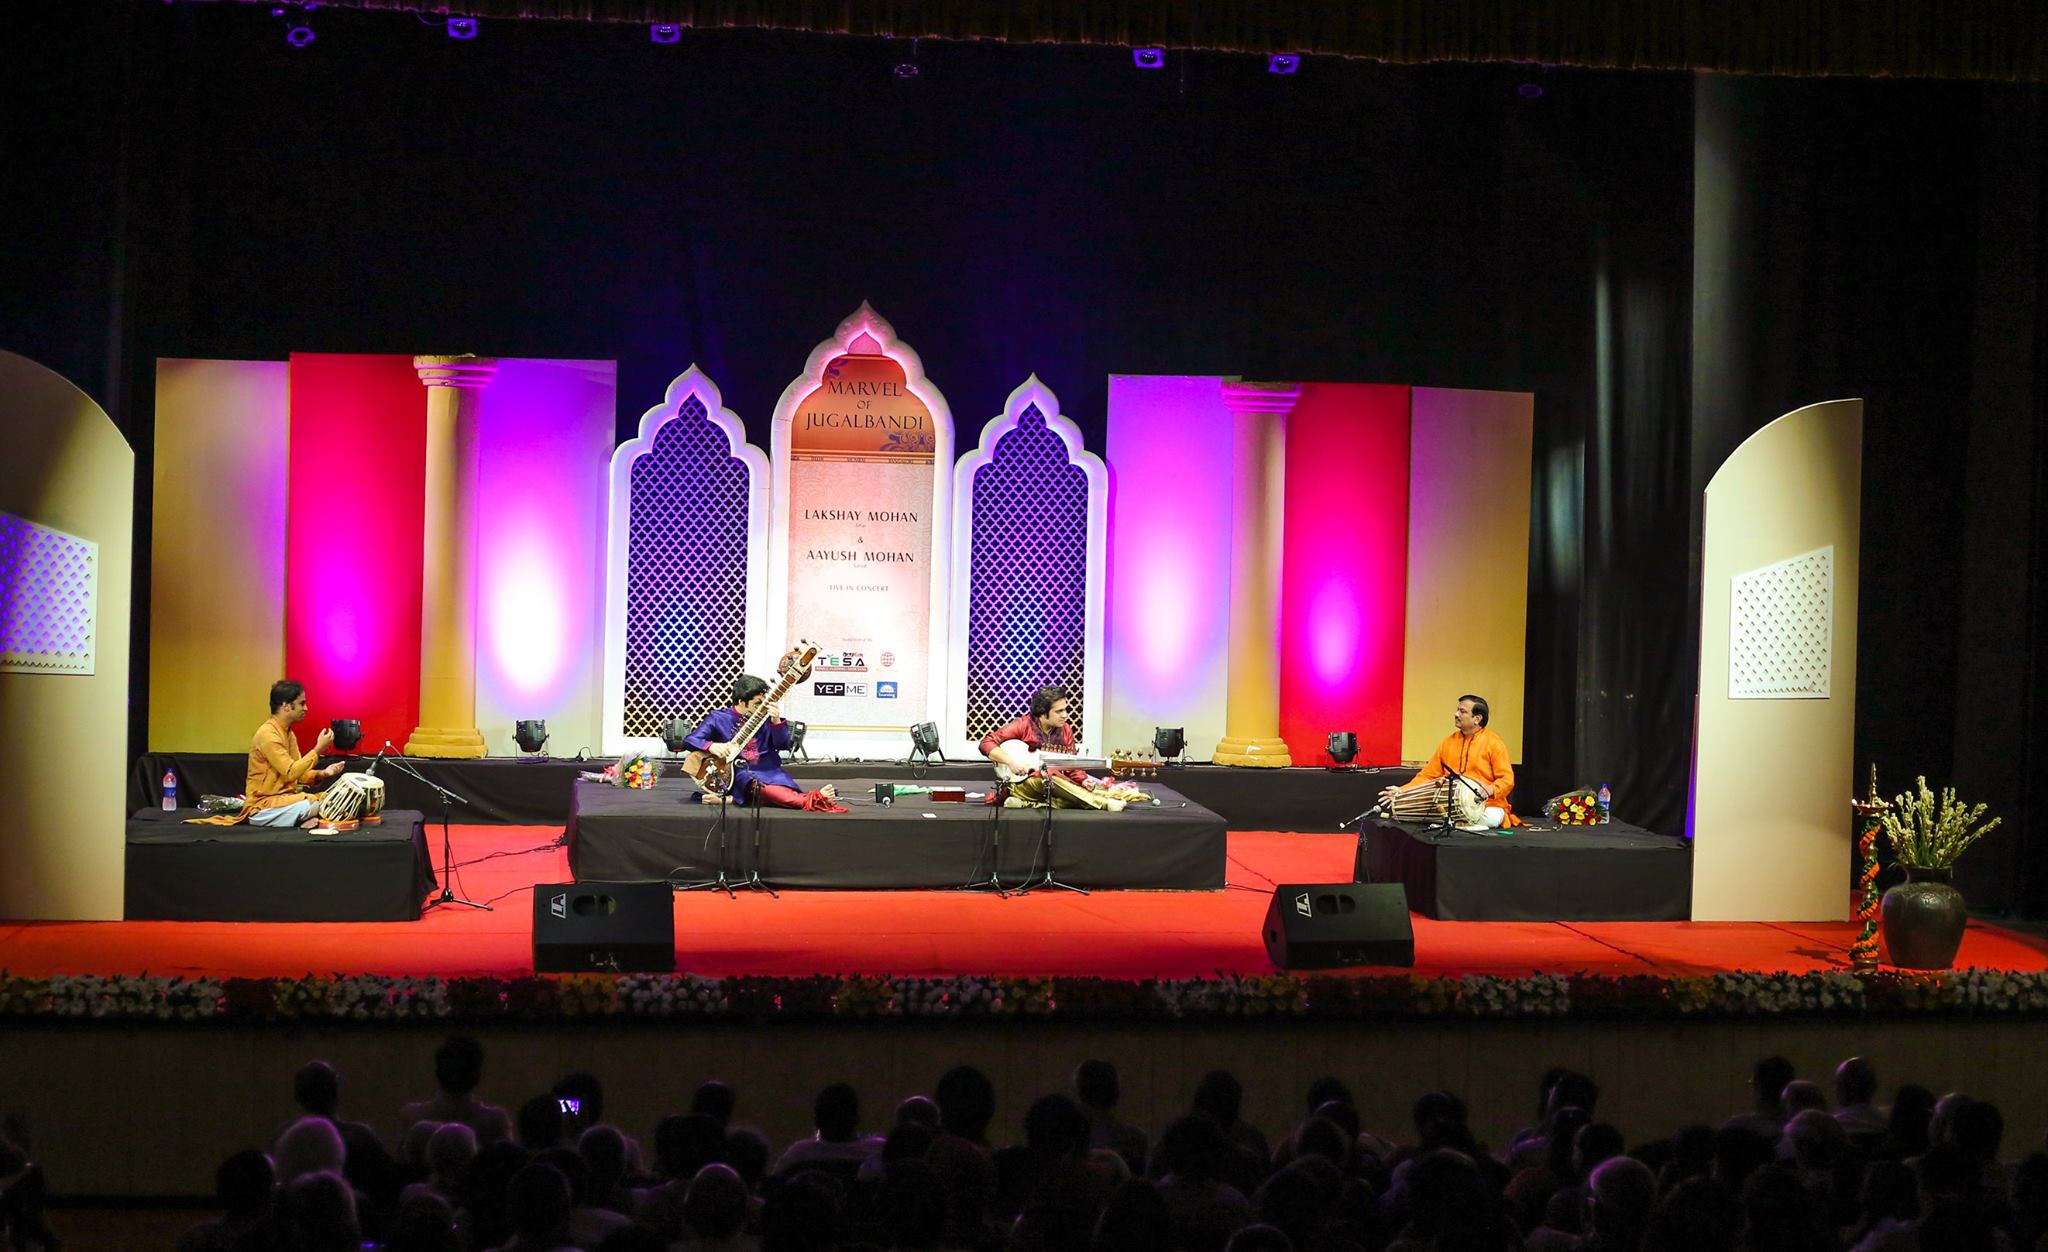 The Marvel of Jugalbandi Concert in Delhi at the Kamani Auditorium.